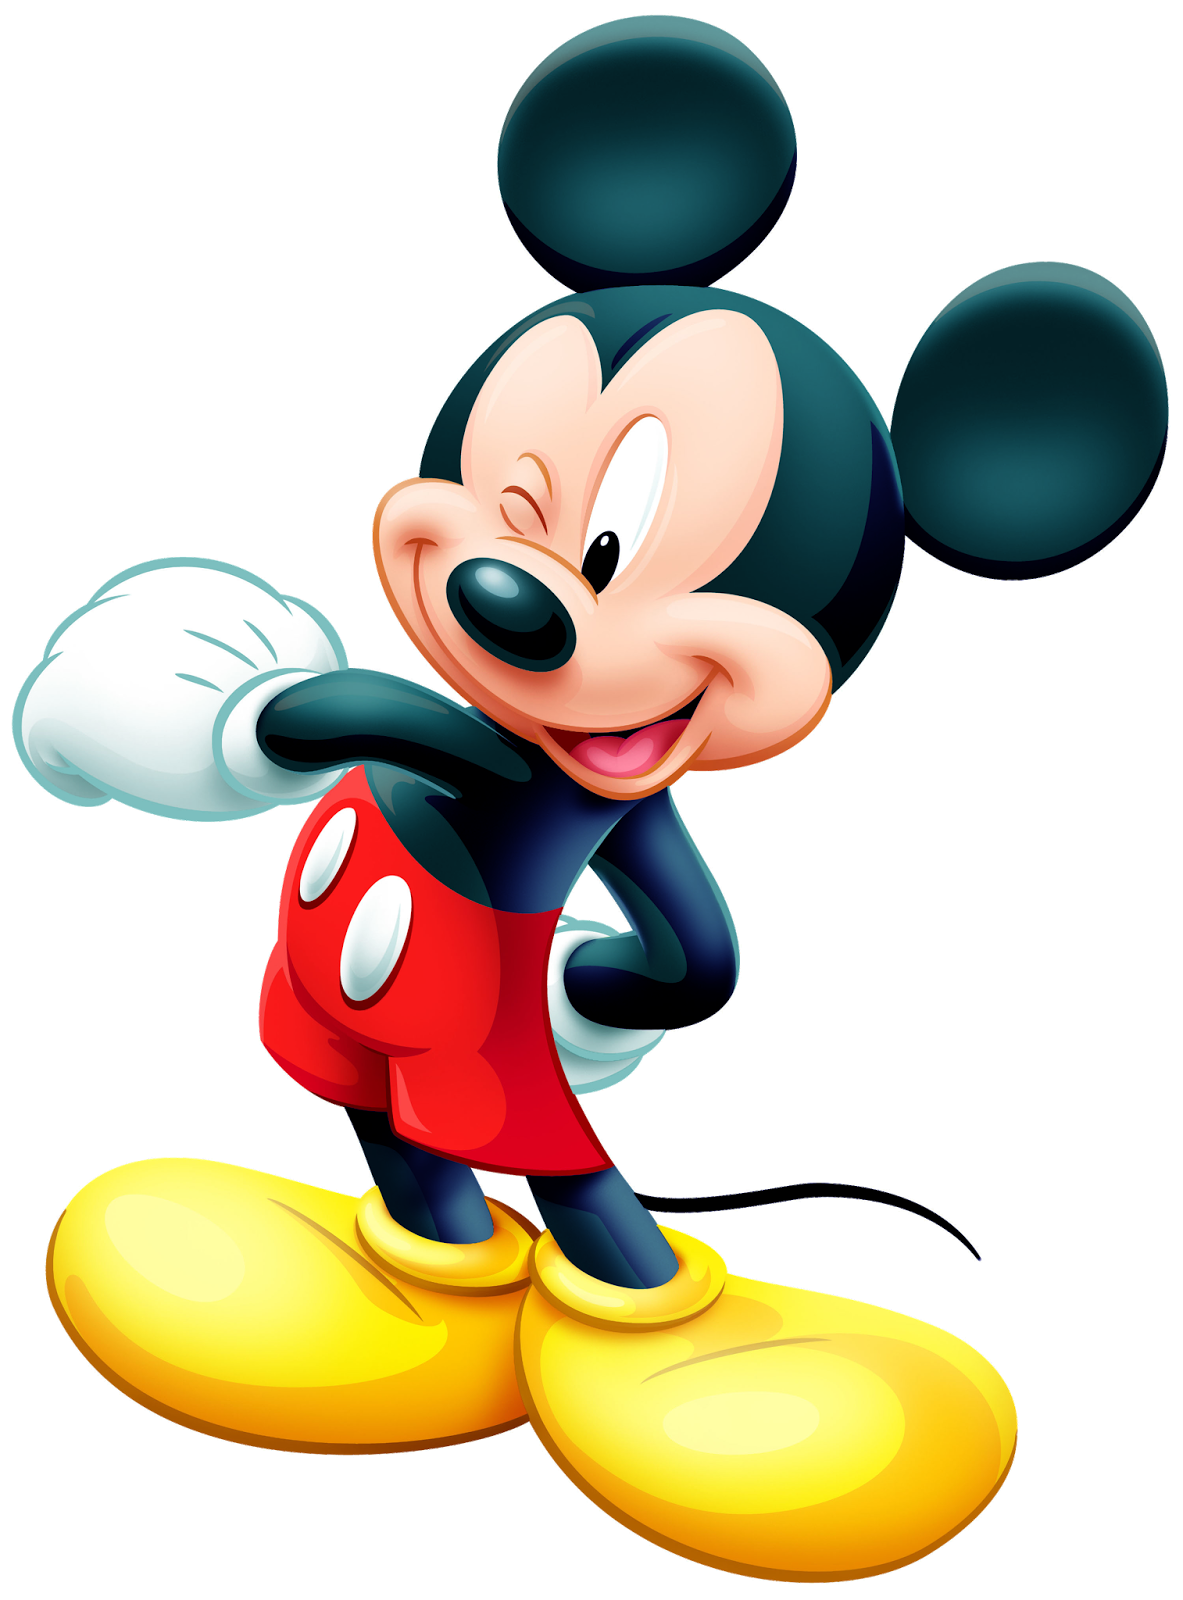 Mickey mouse one png. Kit festa pronta turma